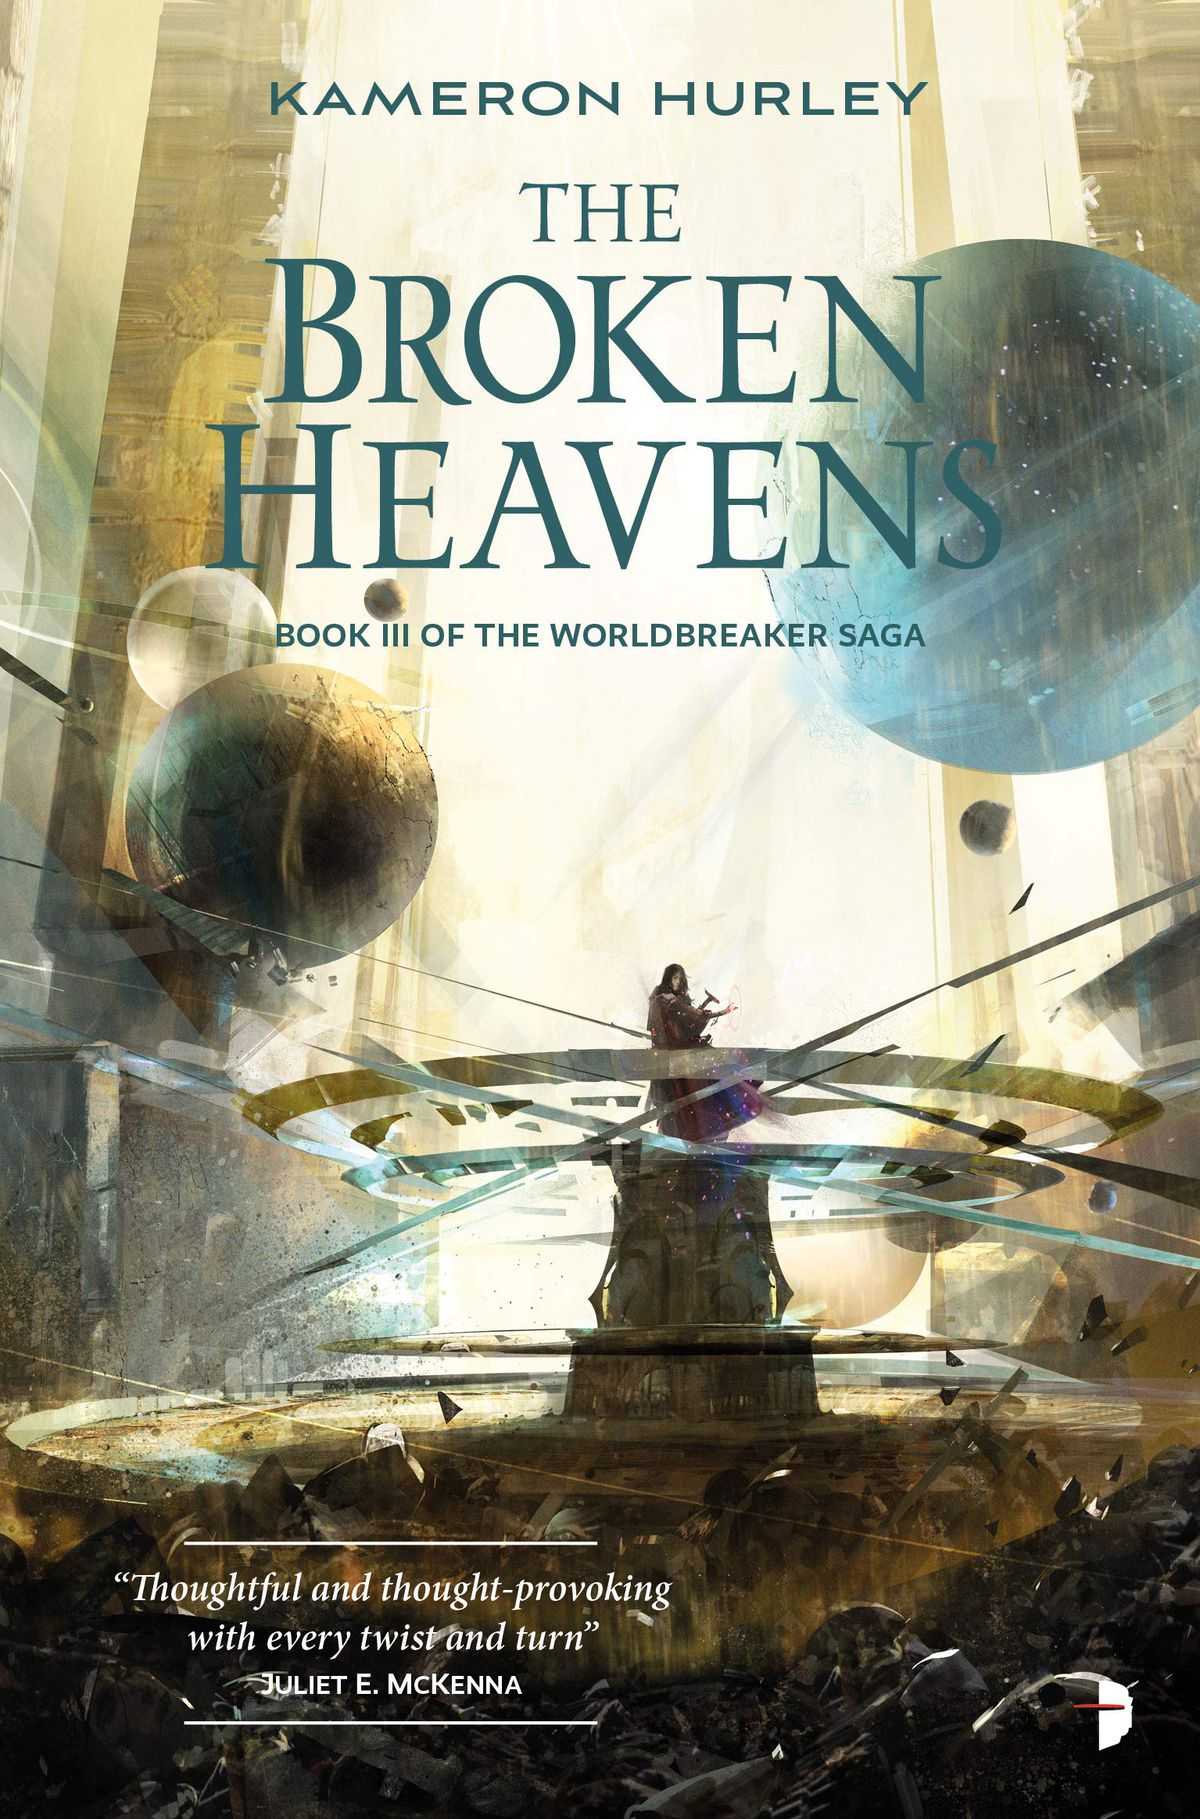 the broken heavens cover has planets swirling around a gyroscope